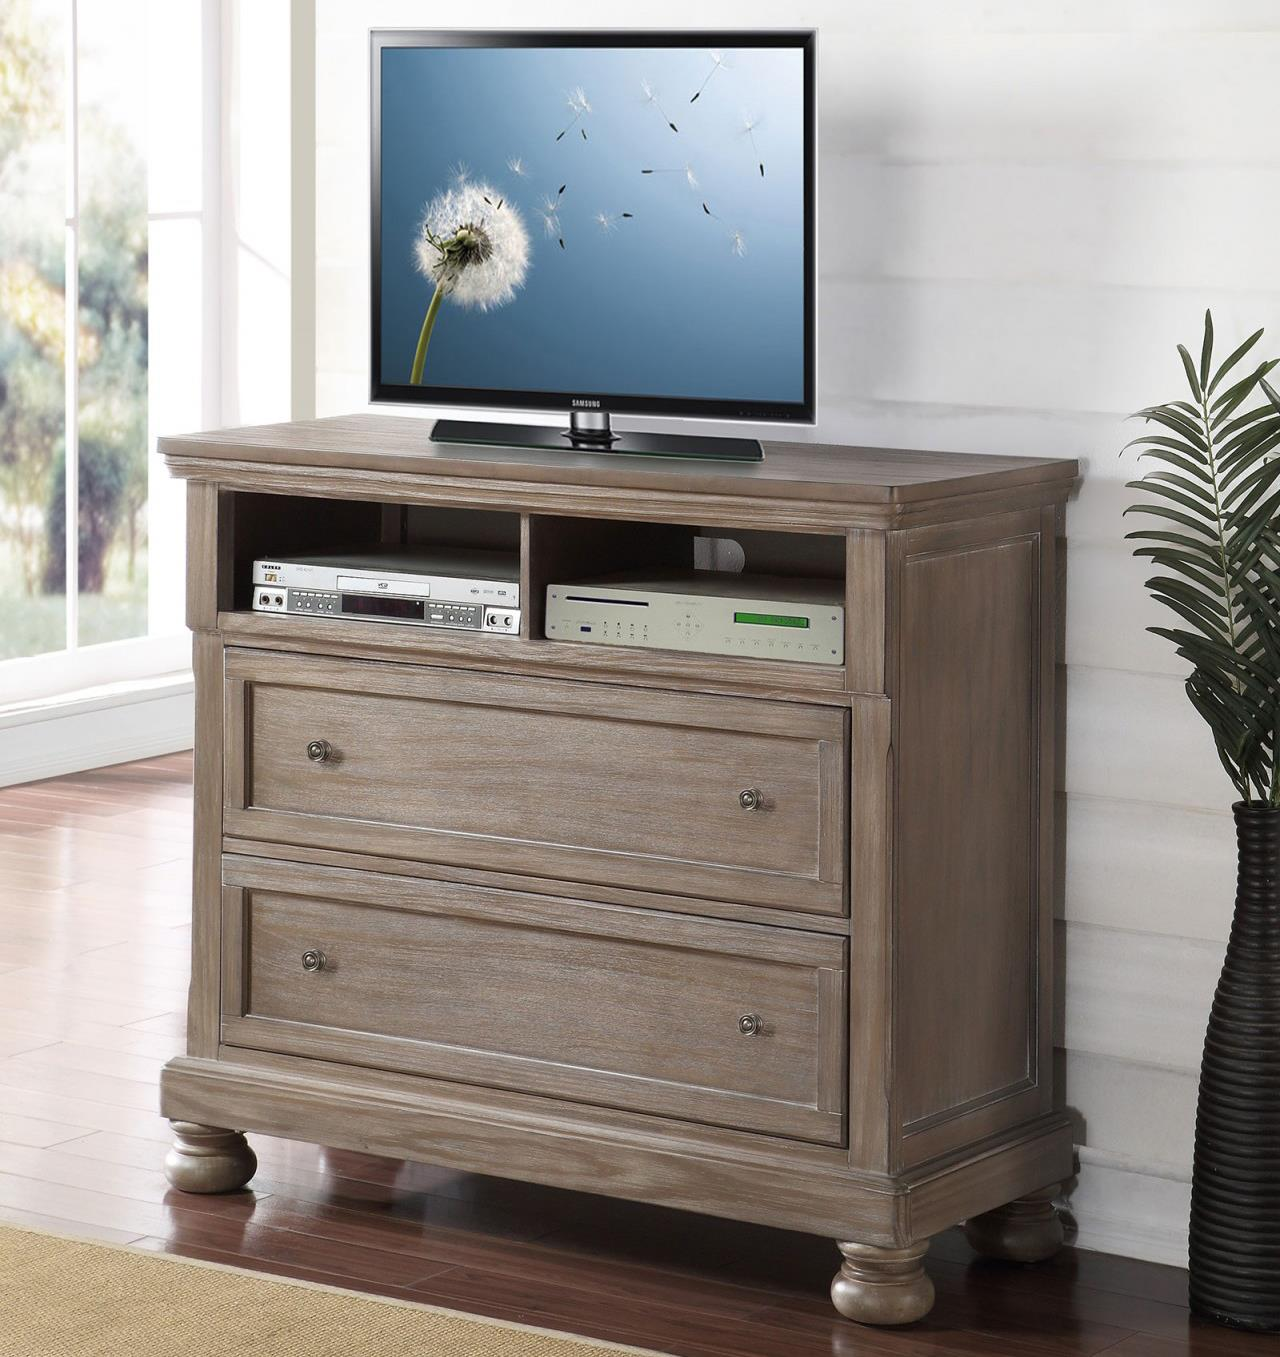 New Classic Allegra Media Console - Item Number: B2159-078